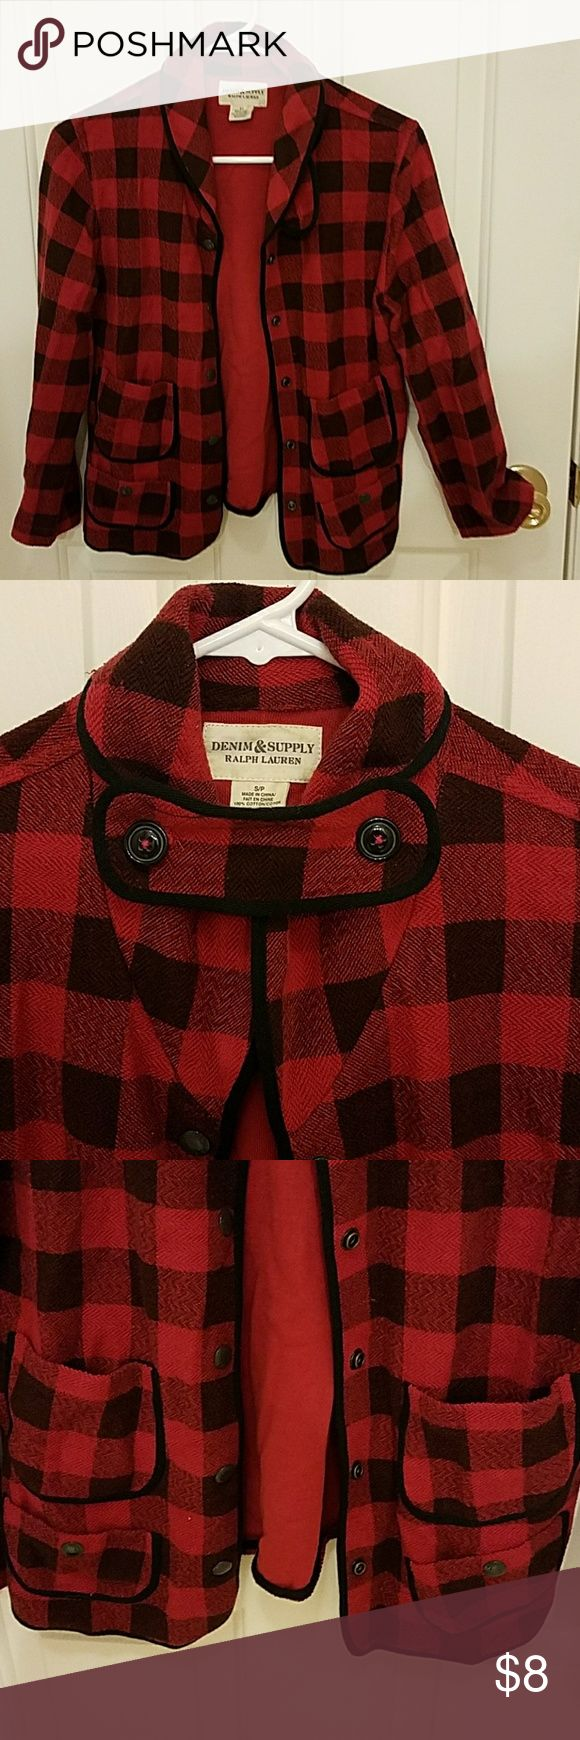 Ralph Lauren denim and supply jacket Cute red and black checked jacket. 100% cotton Ralph lauren denim and supply Jackets & Coats